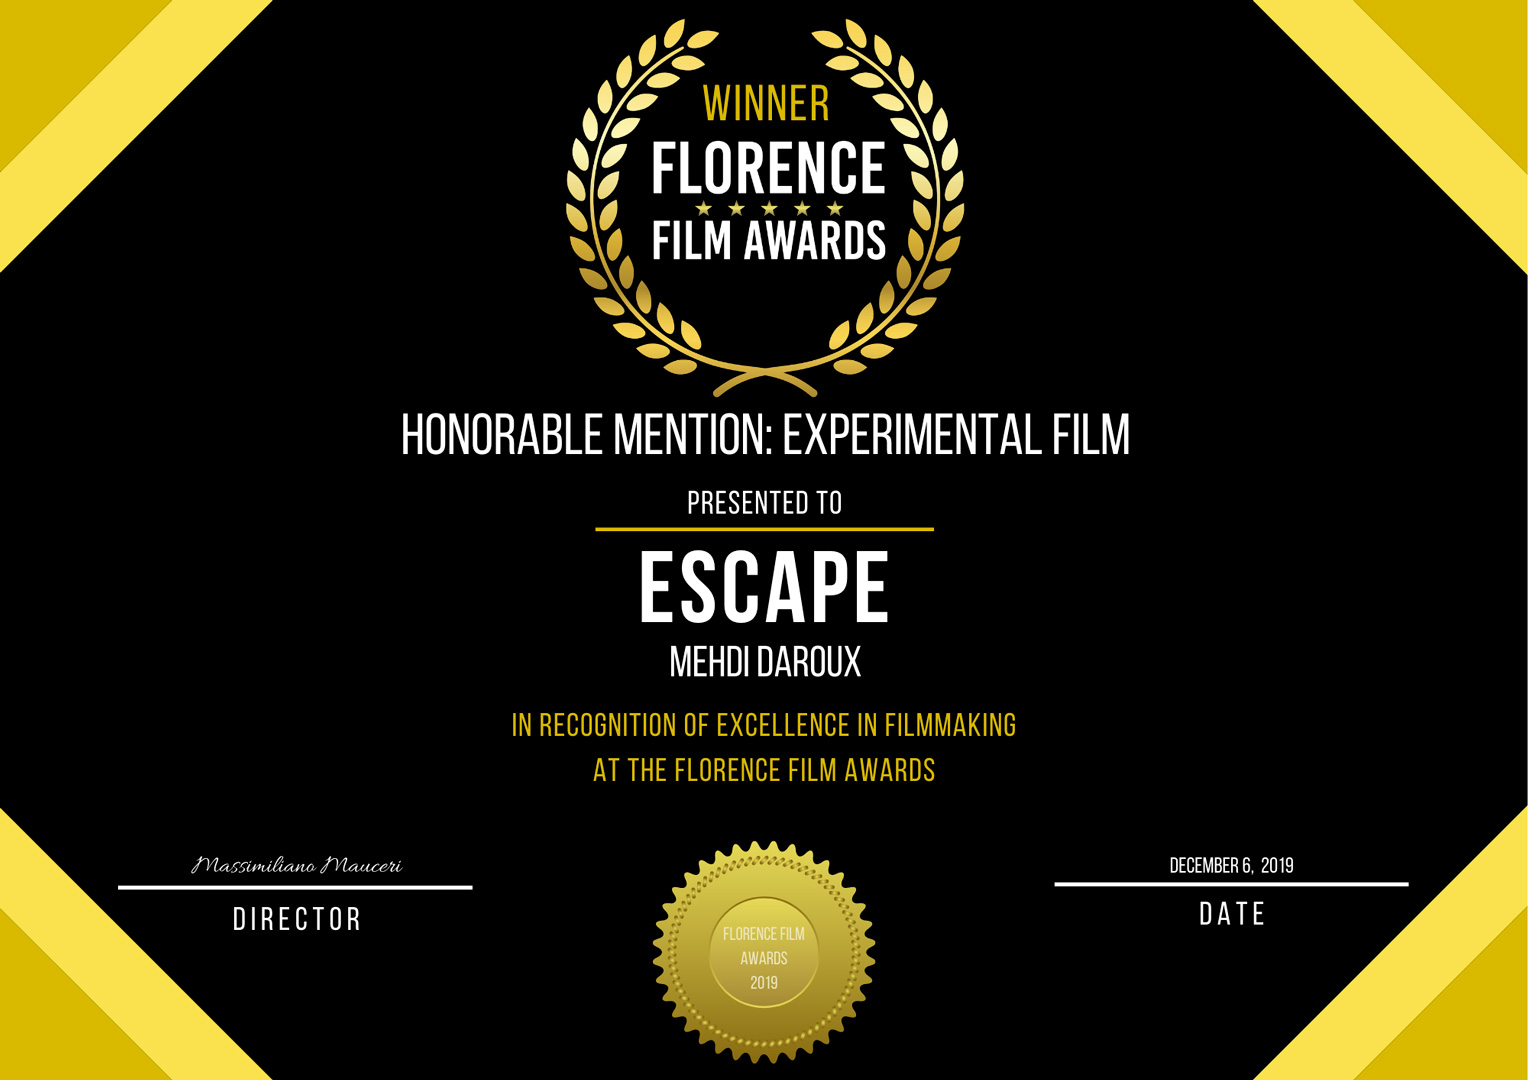 Florence Film Awards - ESCAPE